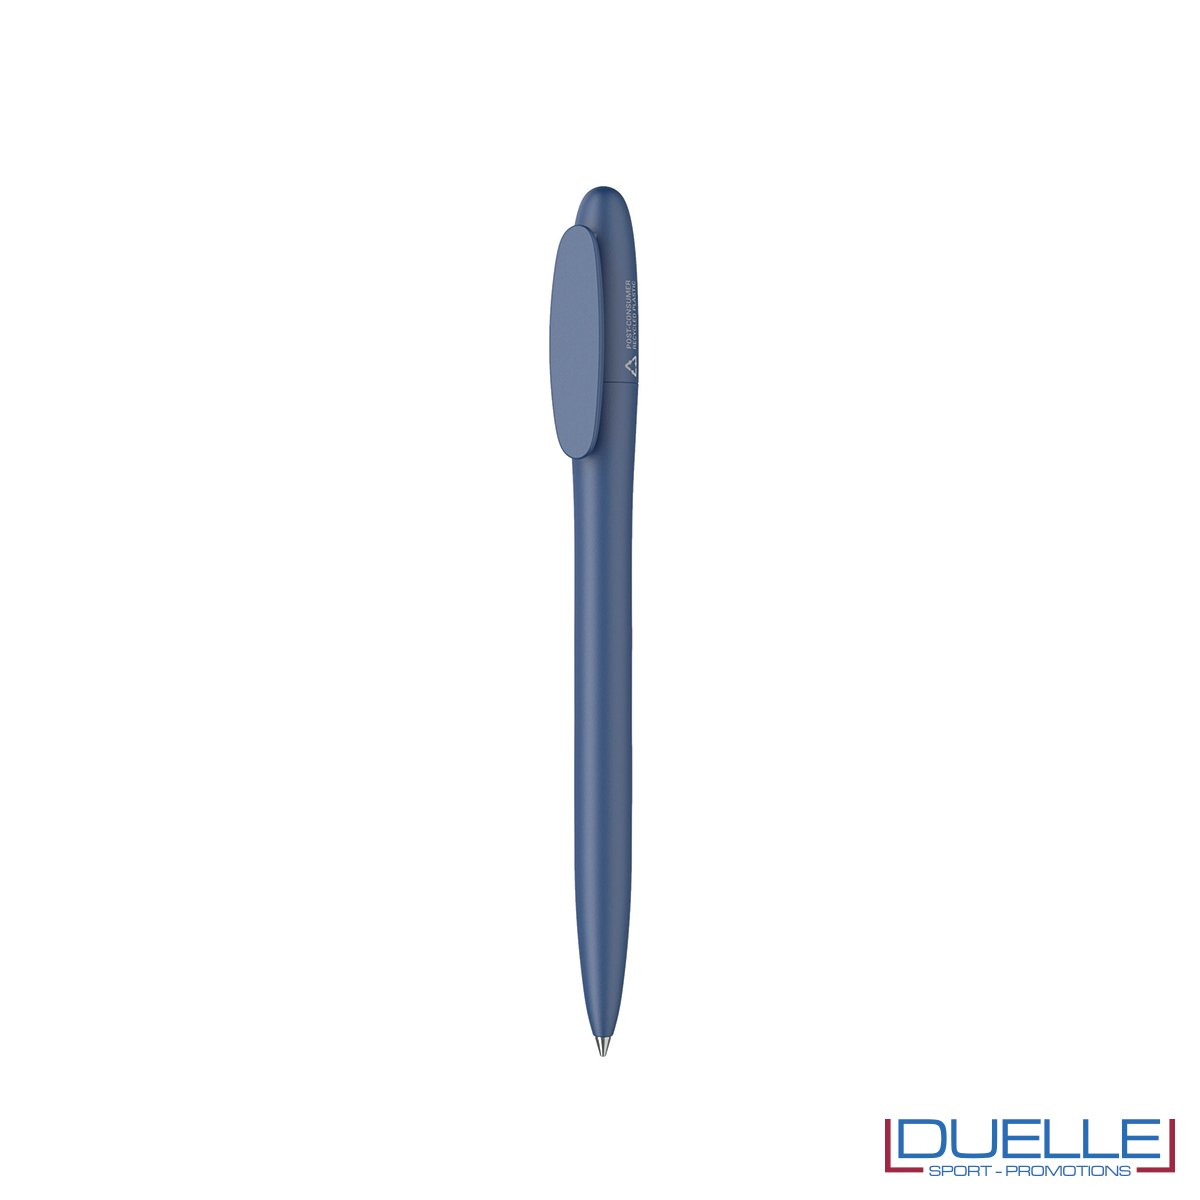 penna ecologica economica made in italy in colore blu